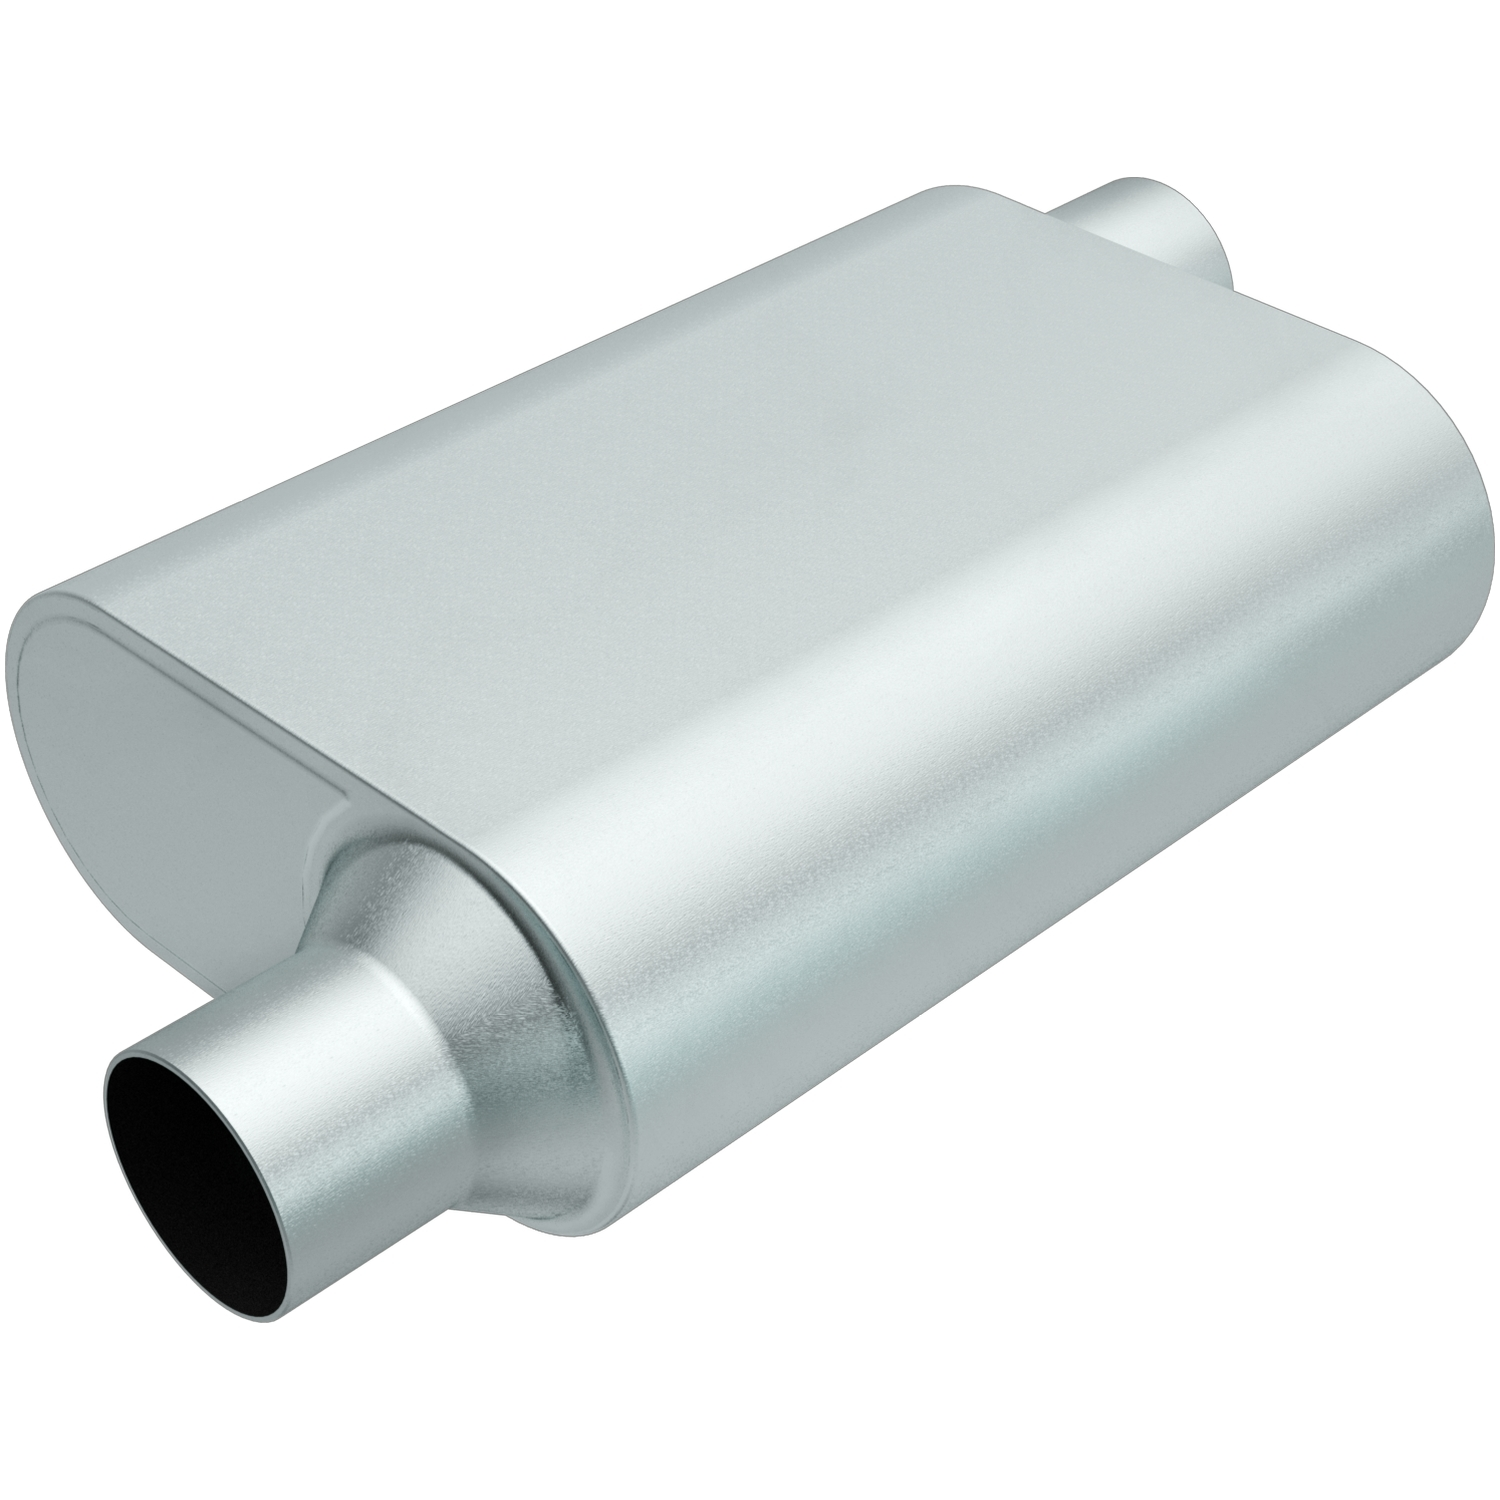 Rumble Aluminizd Muffler 2.5in Offset In/Out